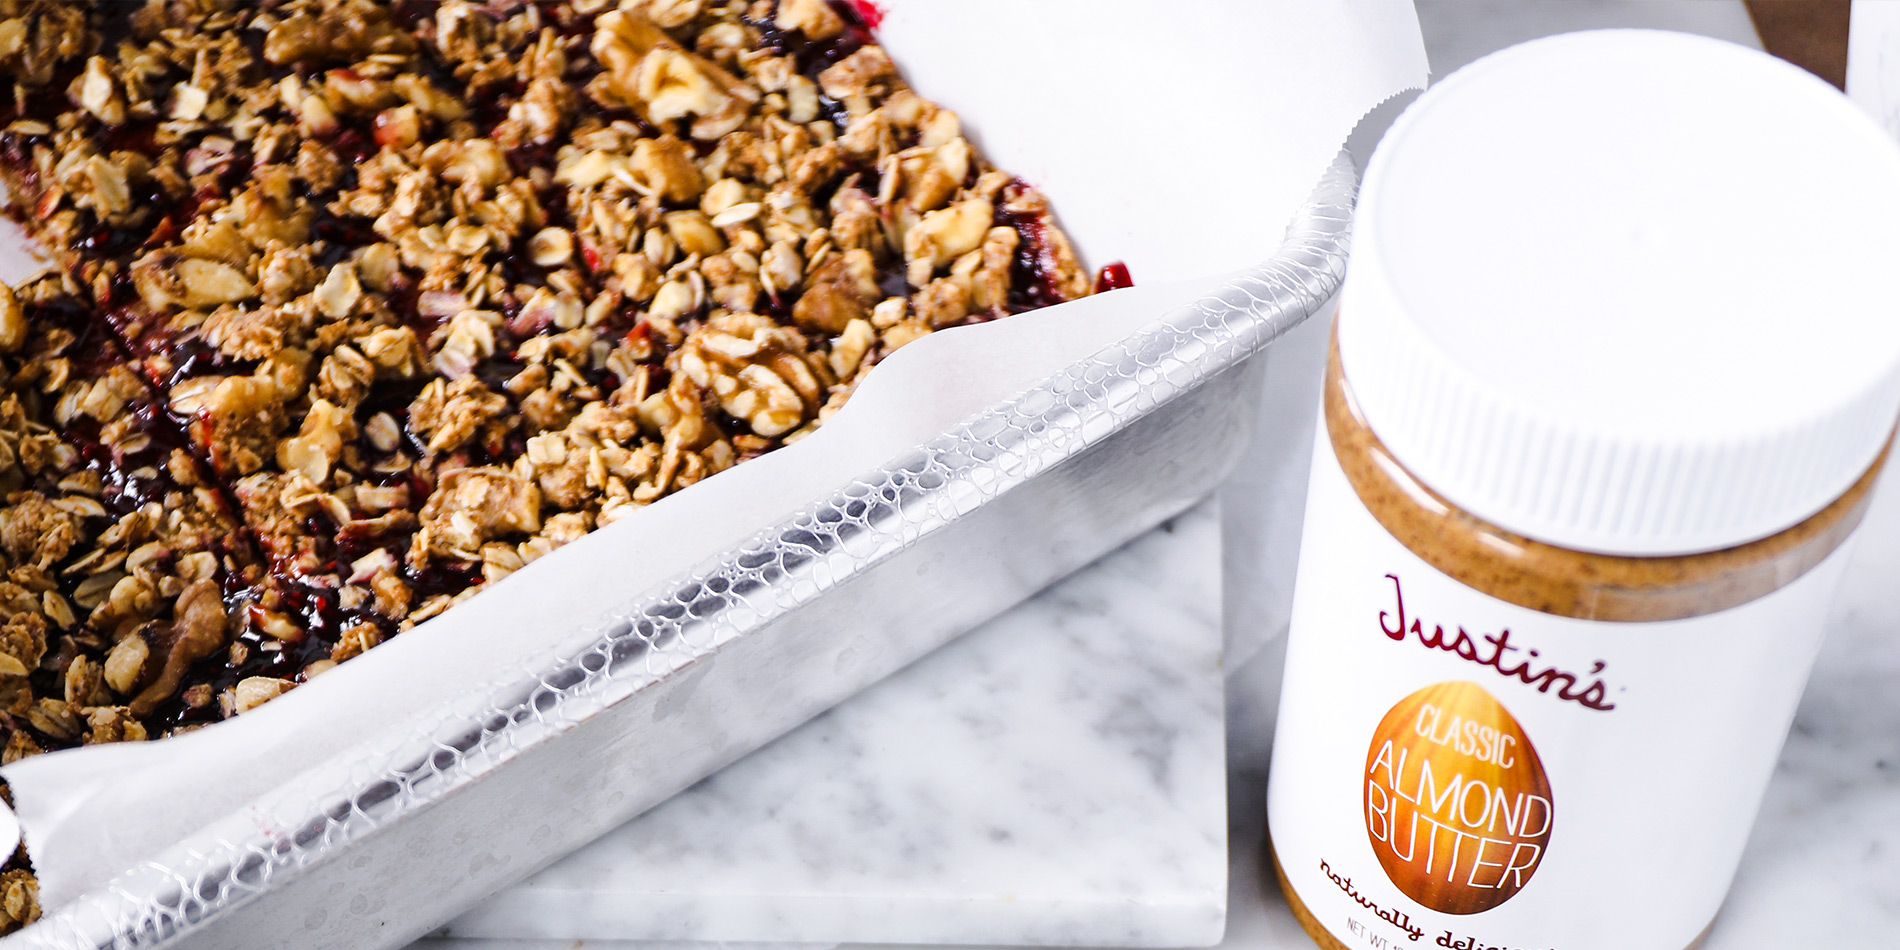 No-Bake Almond Butter and Jelly Breakfast Squares on a white tray with a jar of JUSTIN'S® Classic Almond Butter on the side thumbnail image.